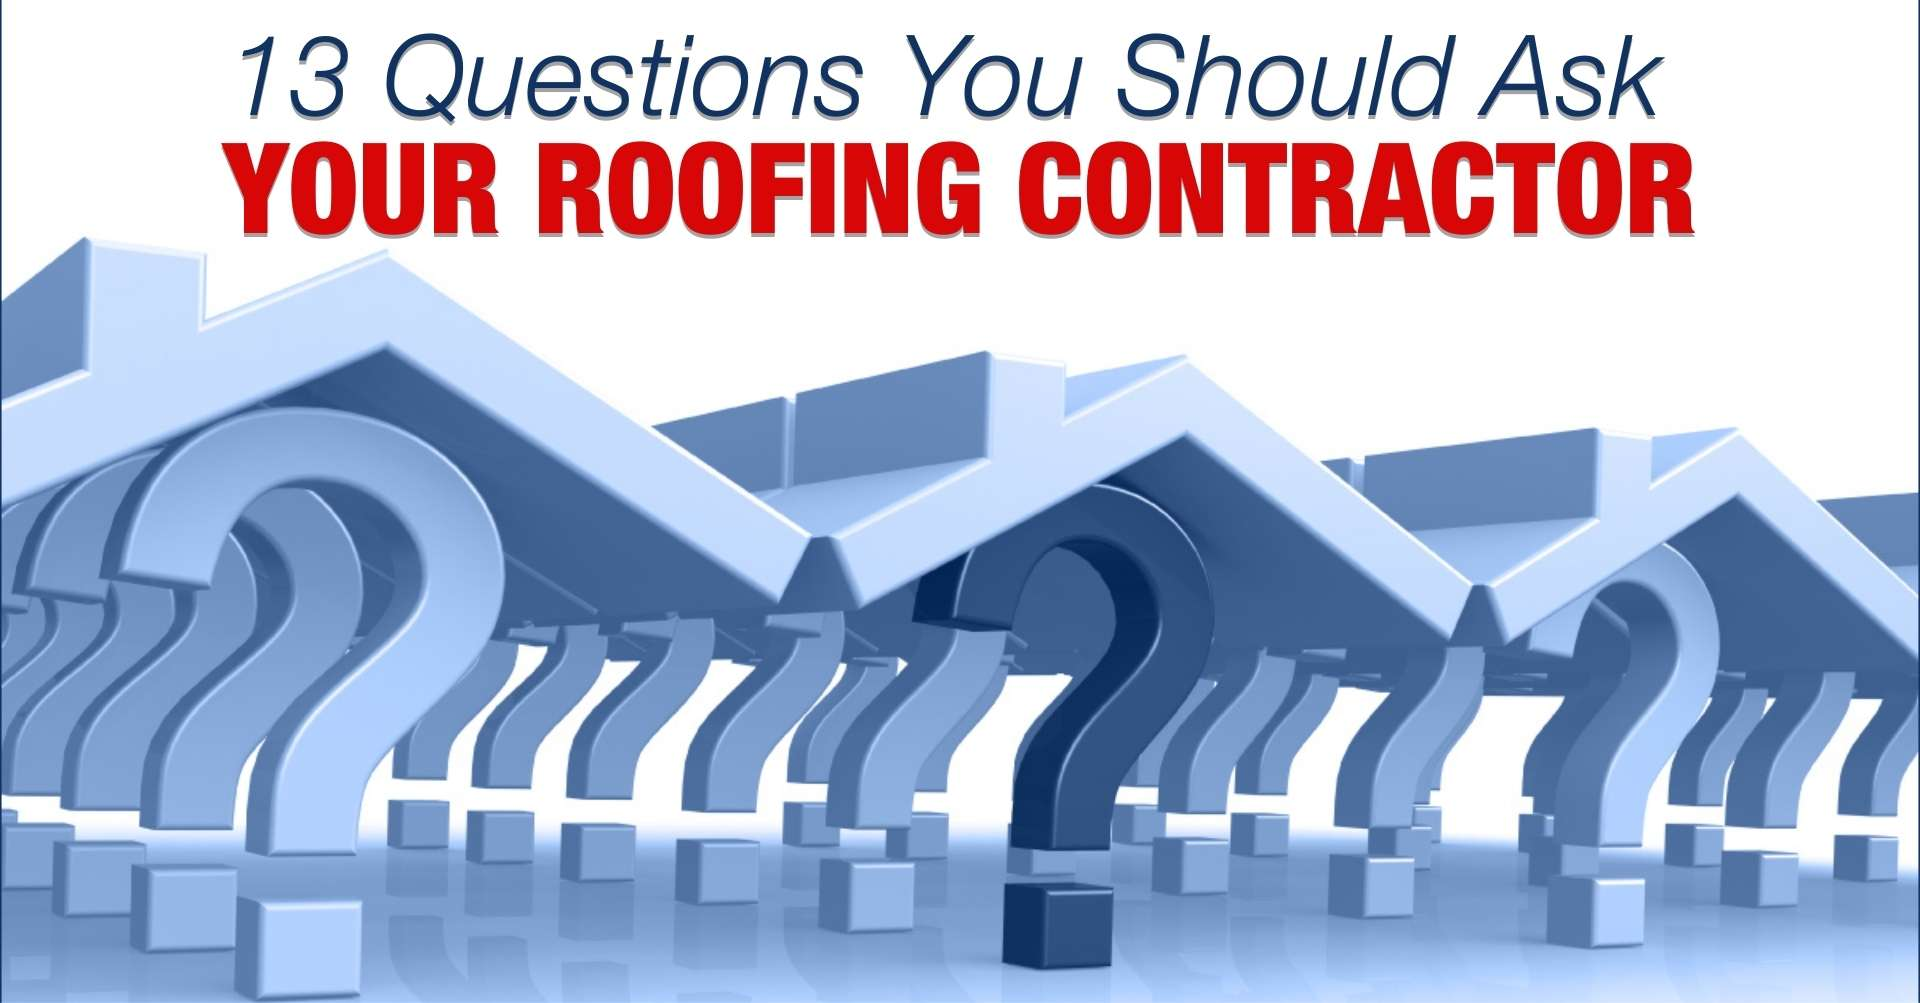 13 Questions You Should Ask Your Roofing Contractor